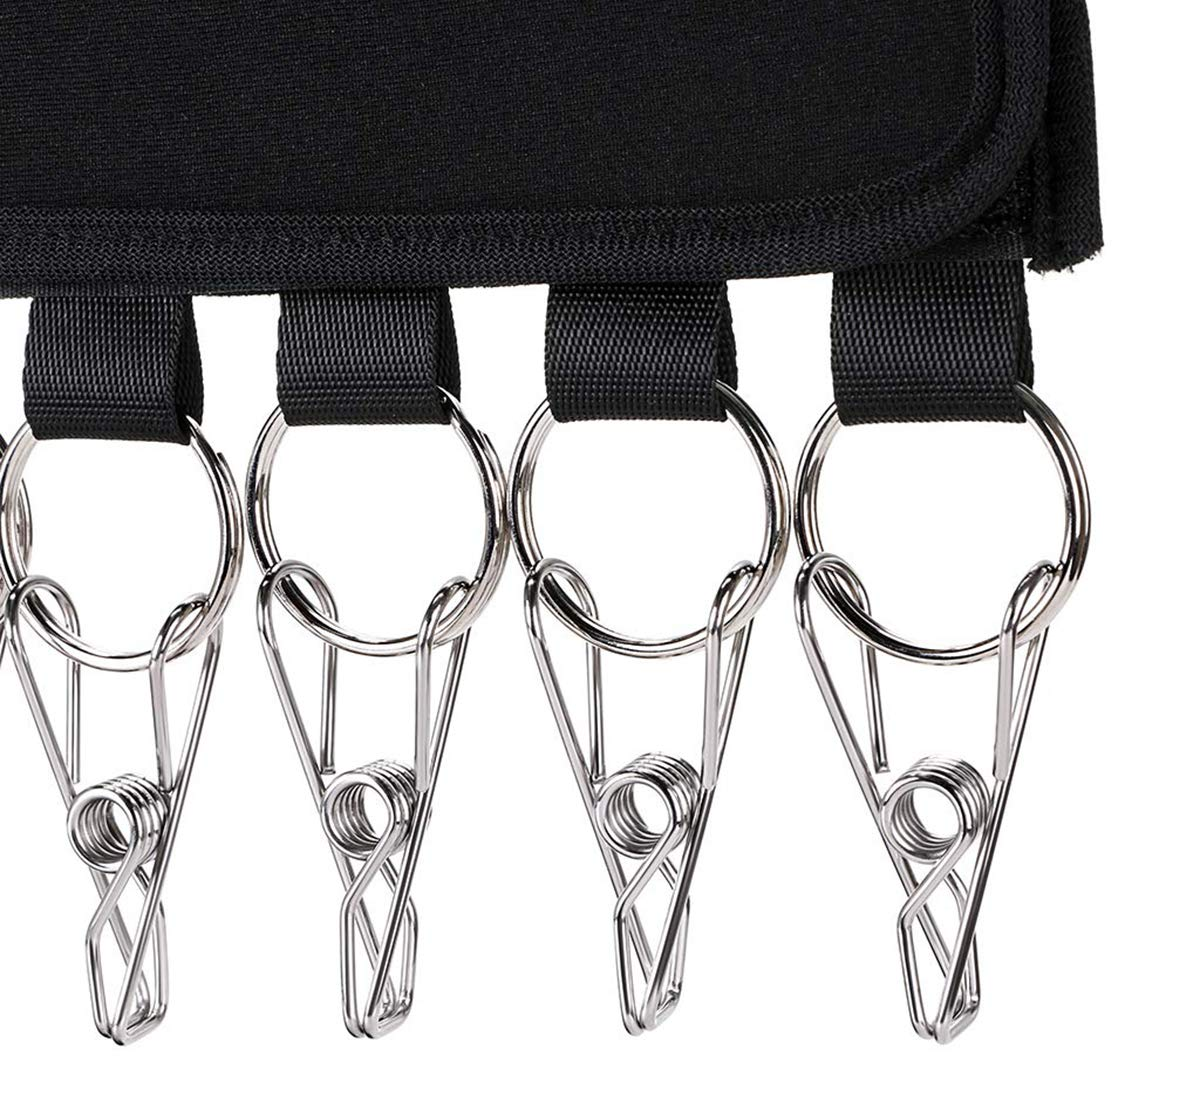 Cap Organizer Holder for Closet with Stainless Steel Clips AllGoodWare 3 Pcs Hat Organizer Hanger